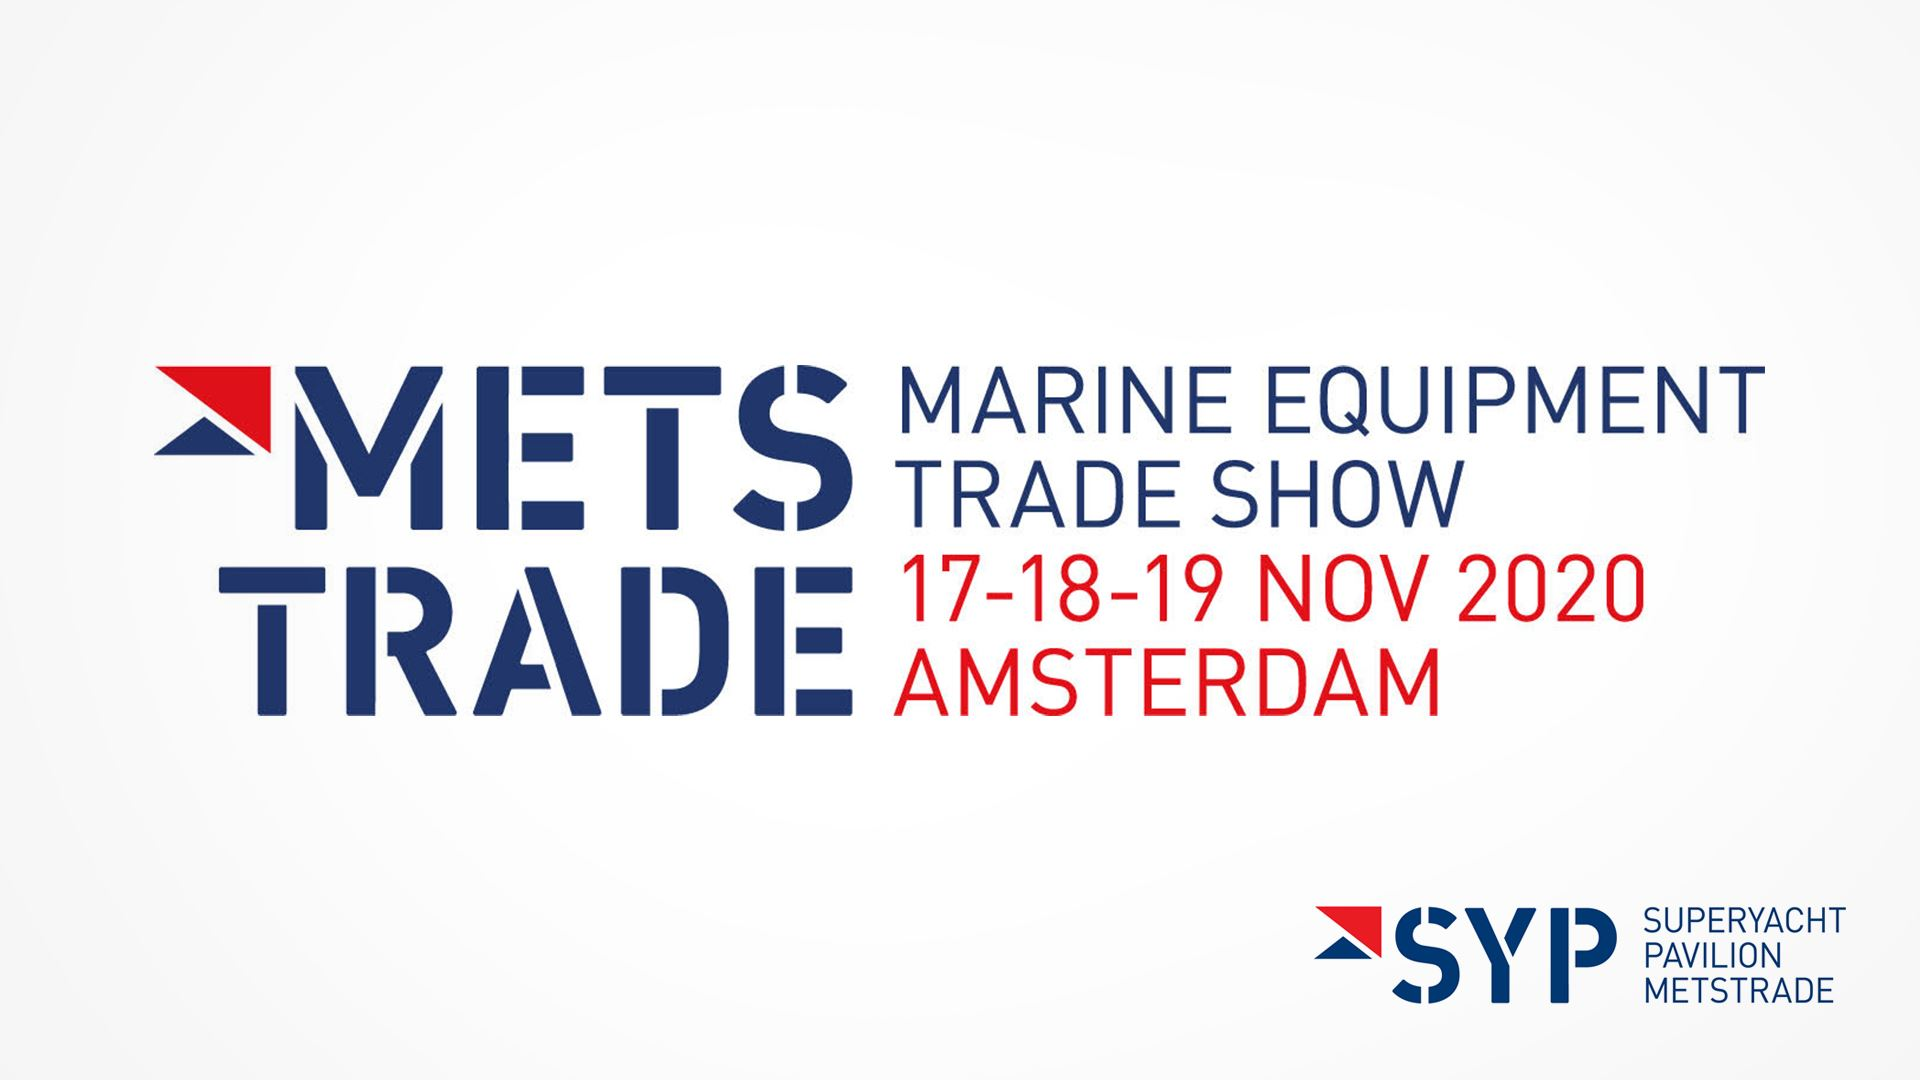 BCE is at METS Trade Show 2020